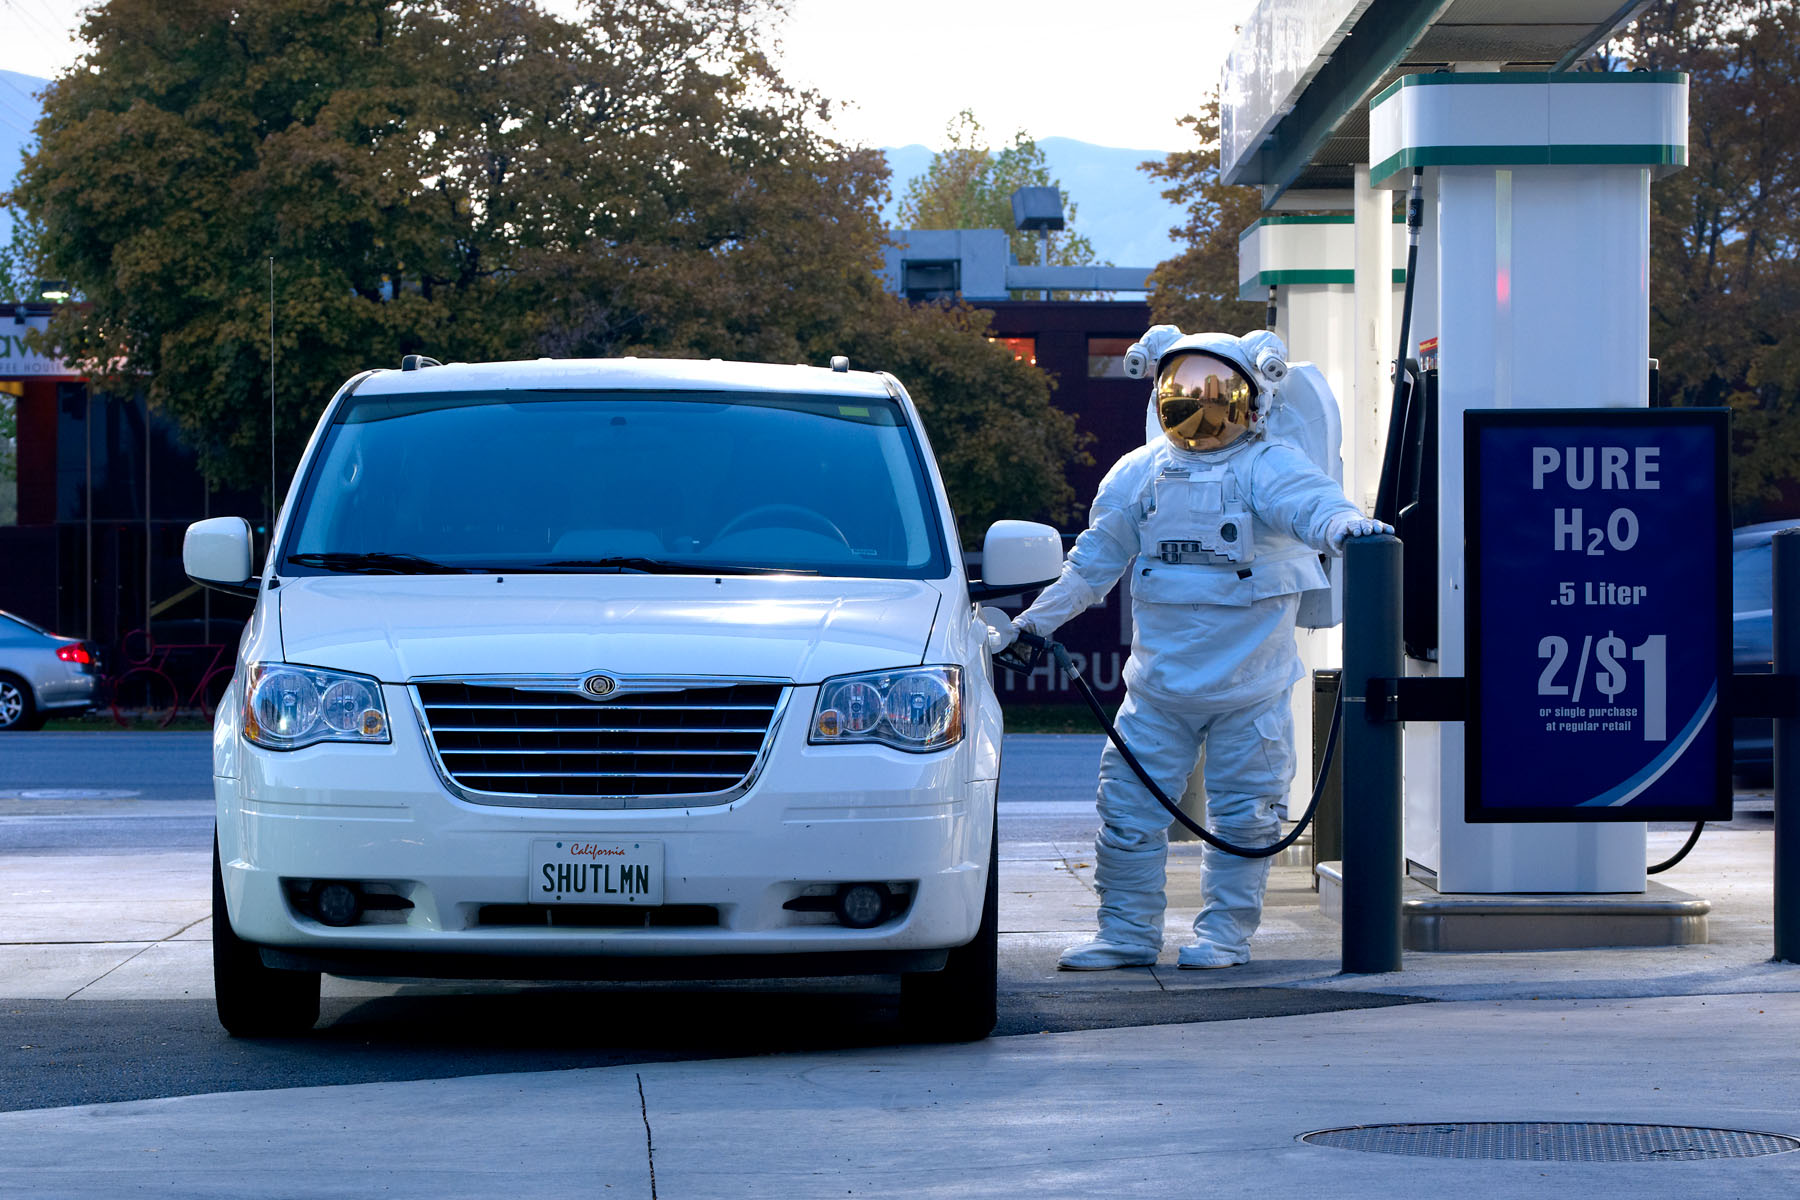 Astronaut_Gas_Station_HEweb_SIZED.jpg